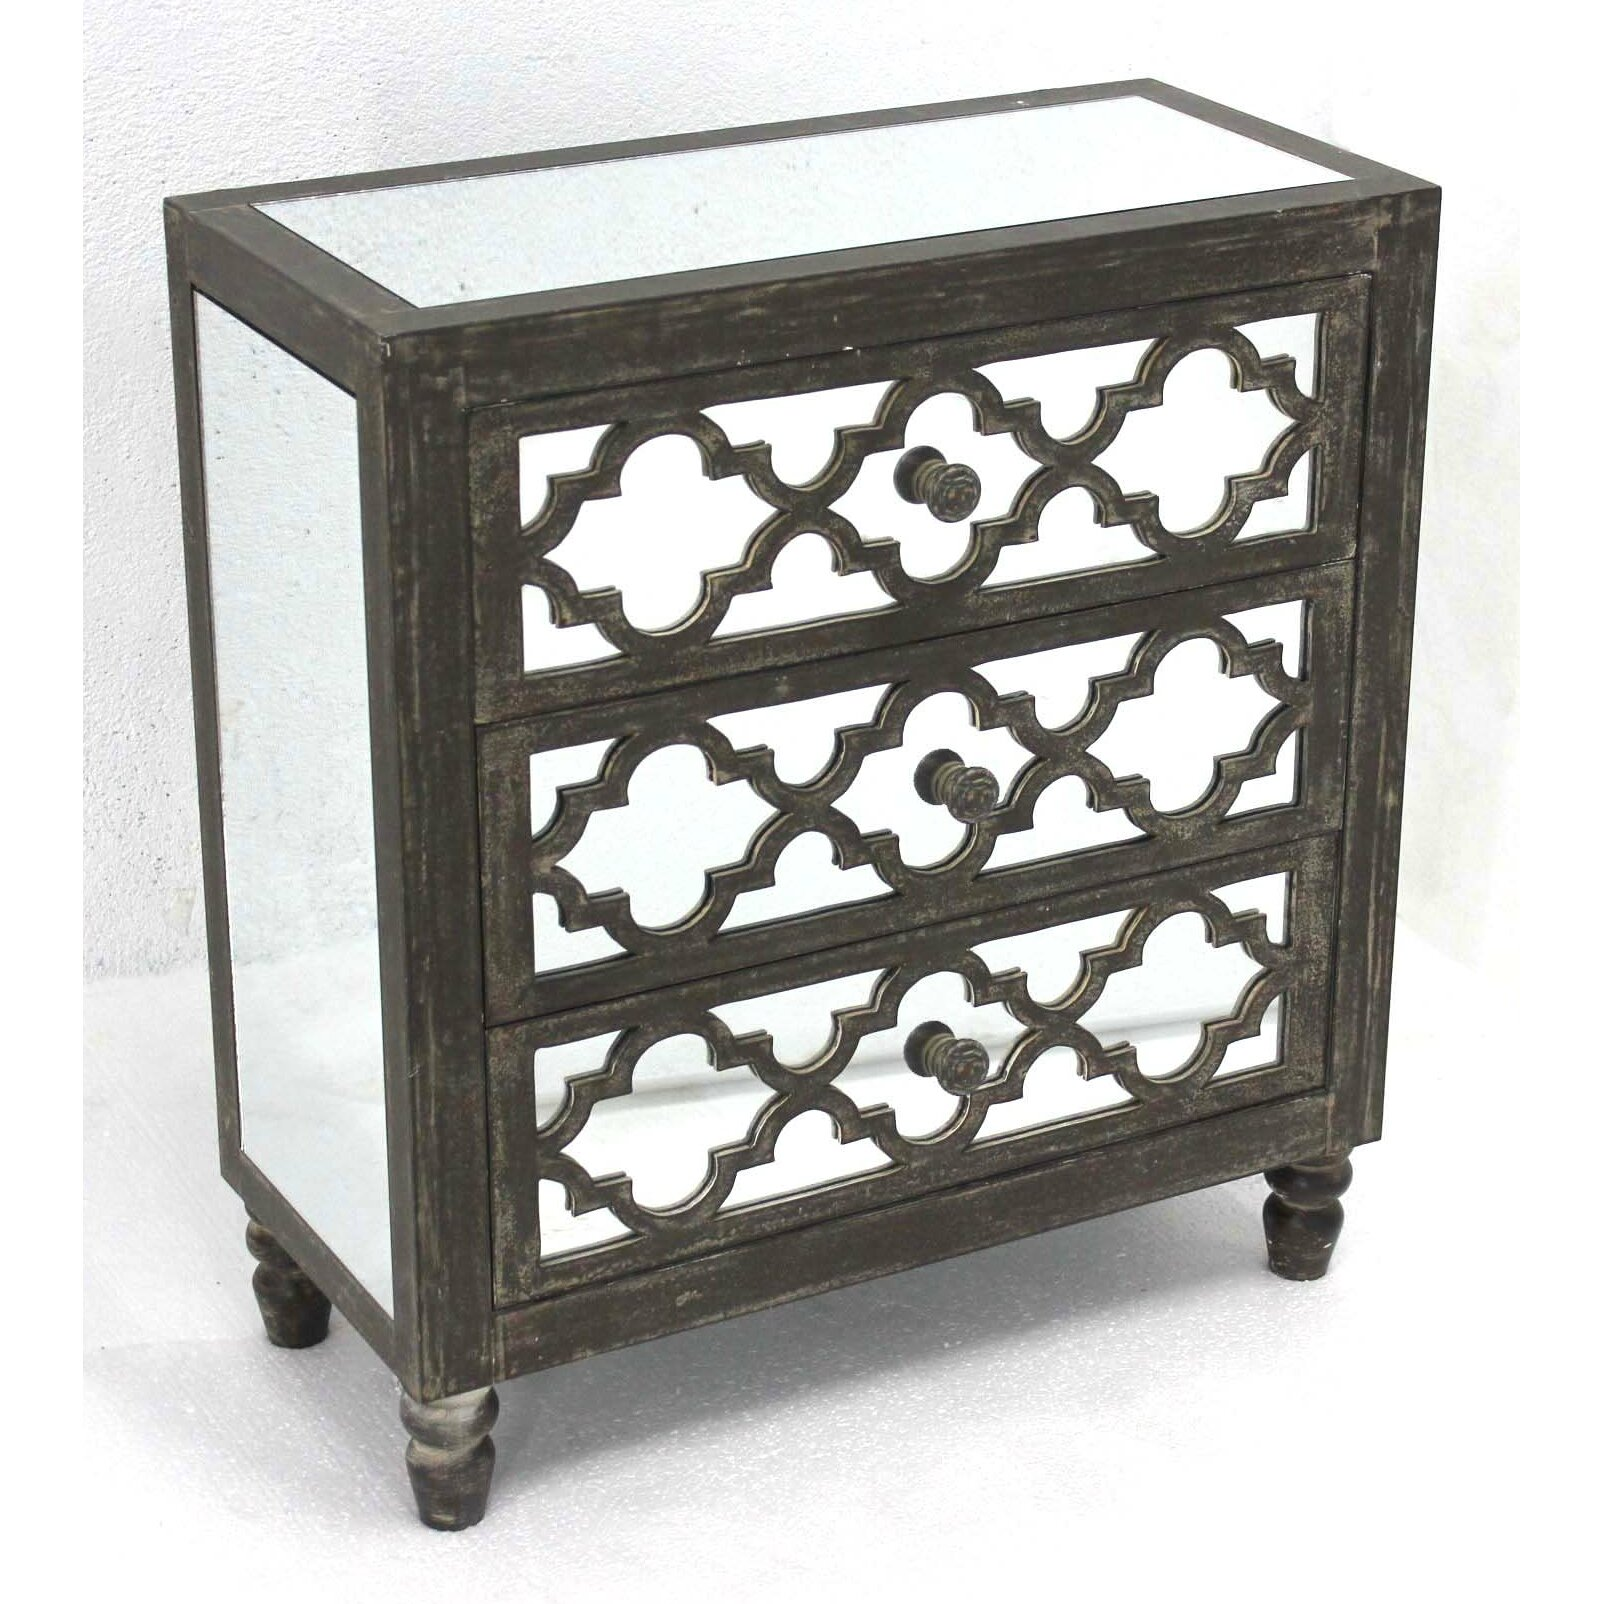 Wonderful image of Teton Home Wooden 3 Drawers Wood Cabinet Mirrored AF 080 AF 080.jpg with #5E5950 color and 1604x1604 pixels